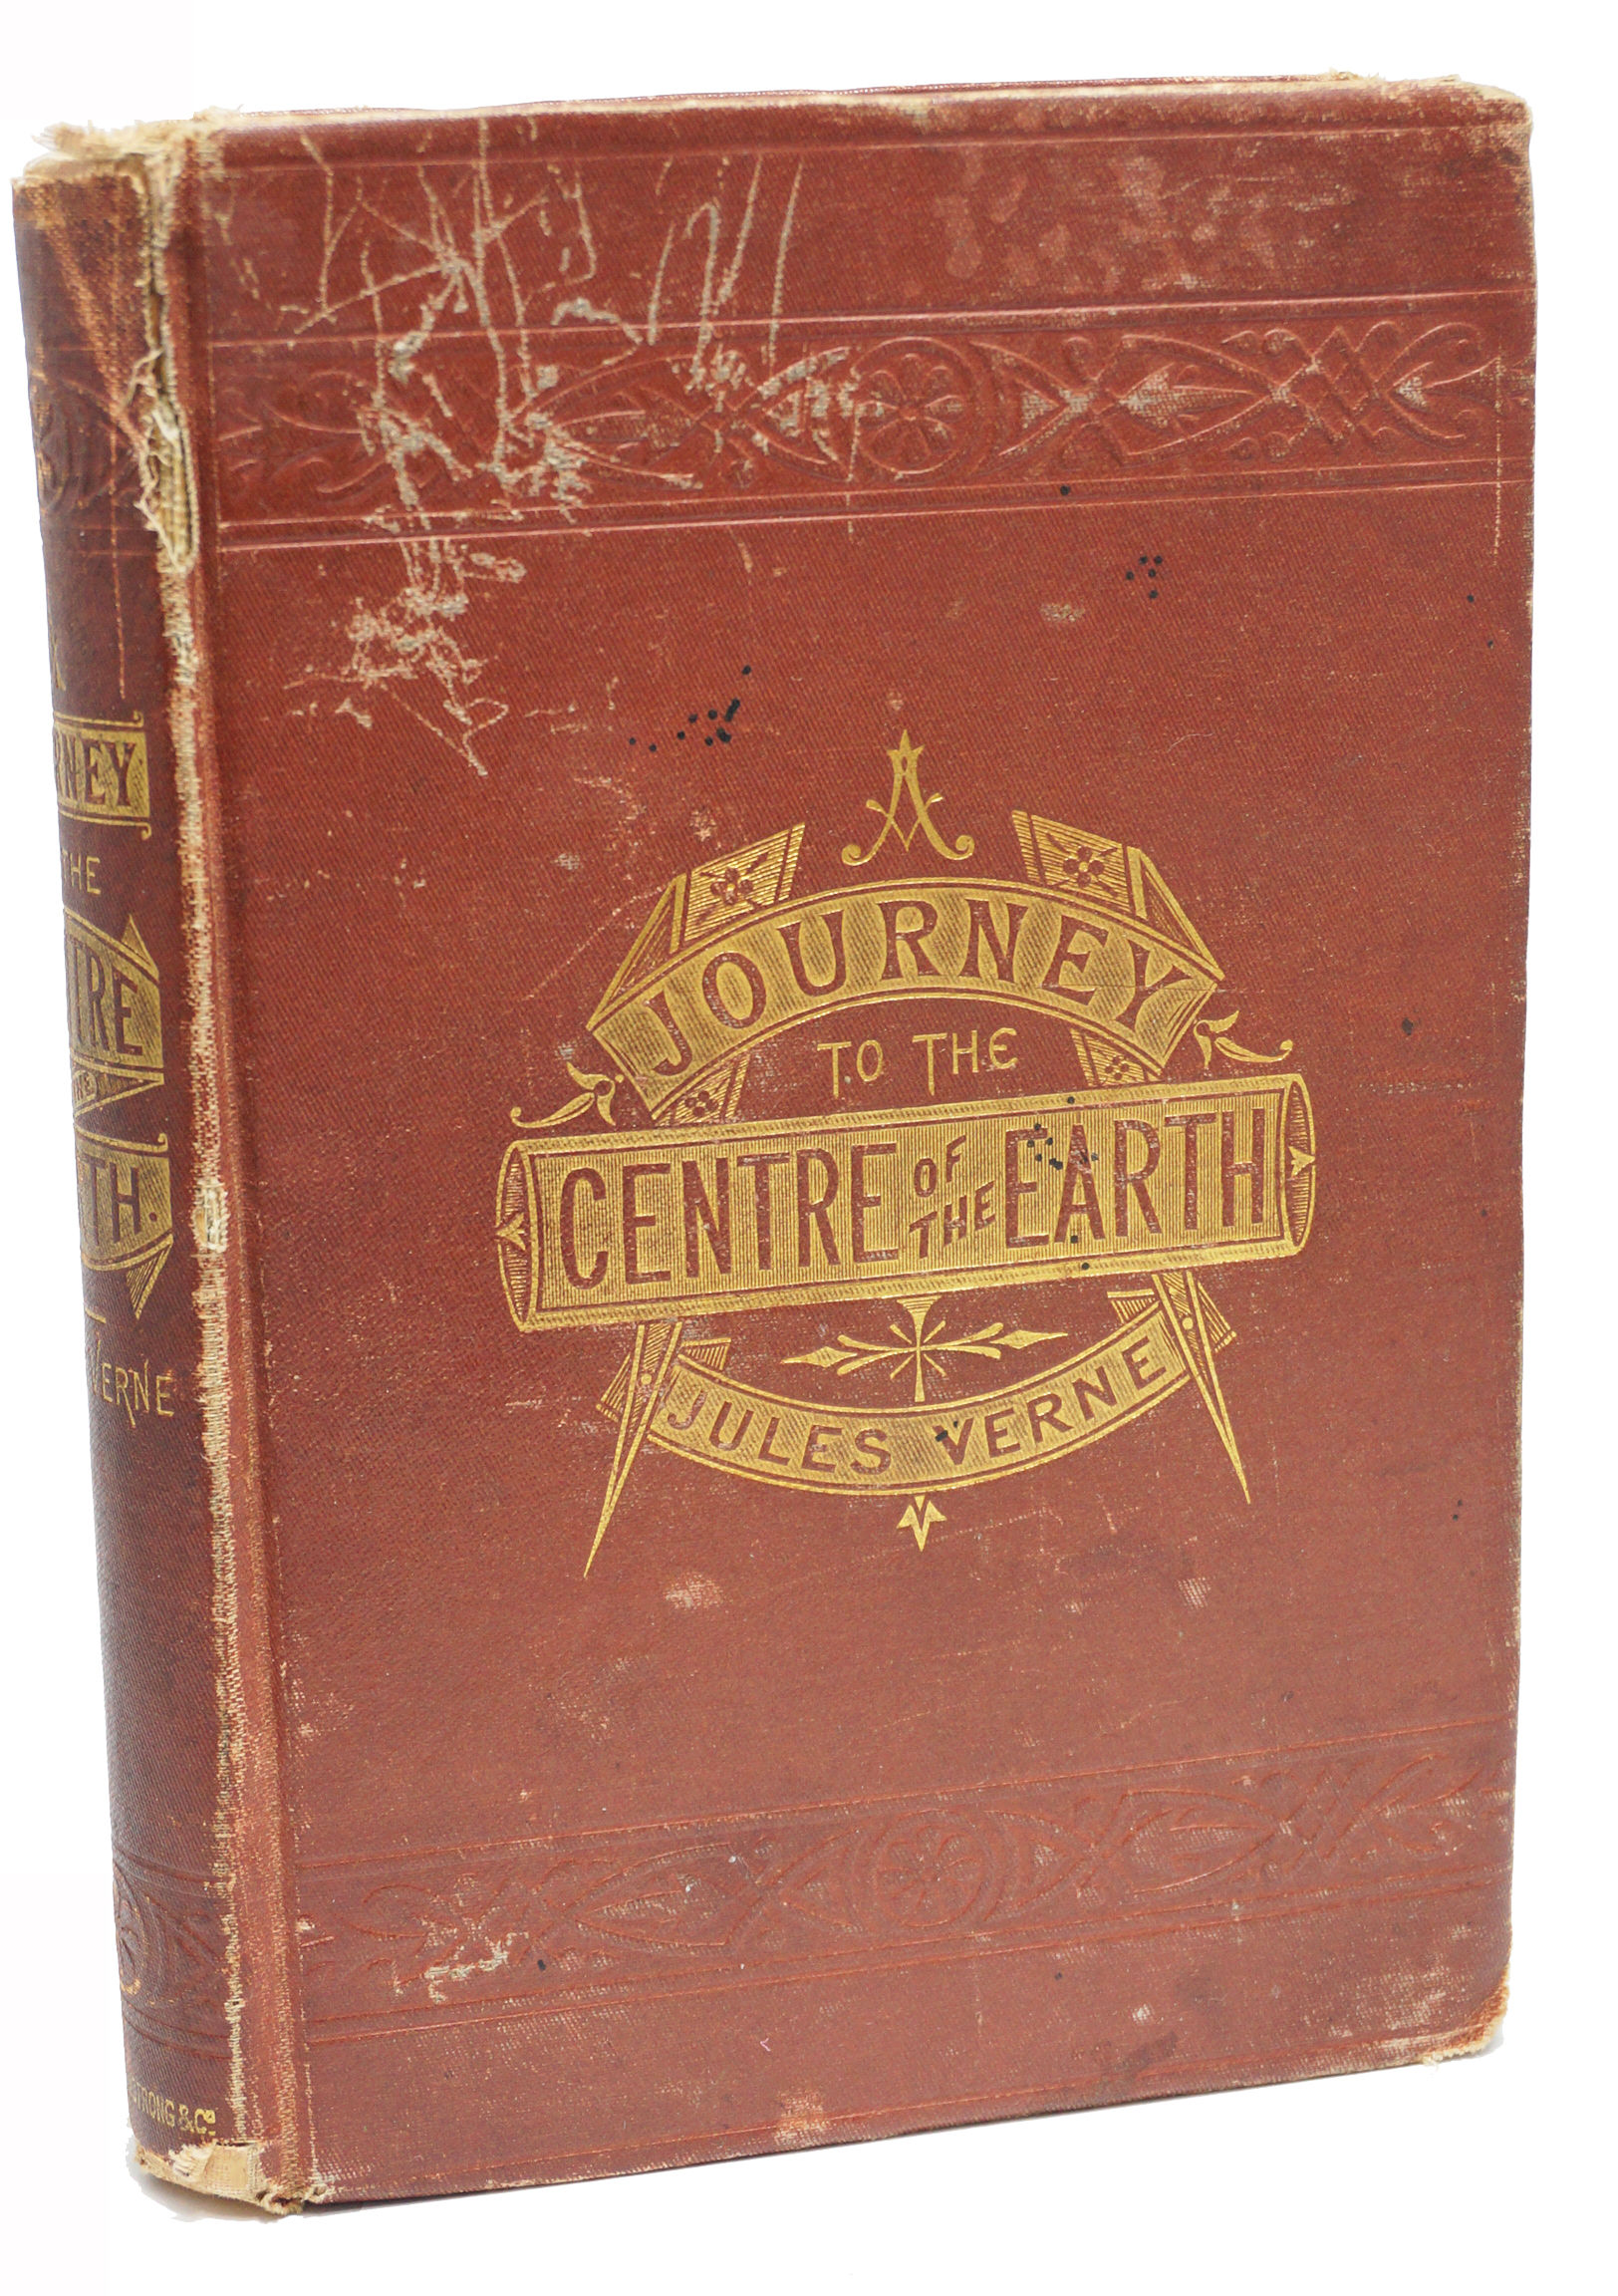 an analysis of the novel earth by jules verne Jules verne biography - the scientific author, jules verne is still remembered for his much celebrated works such as around the world in eighty days (1873), journey to the center of the.